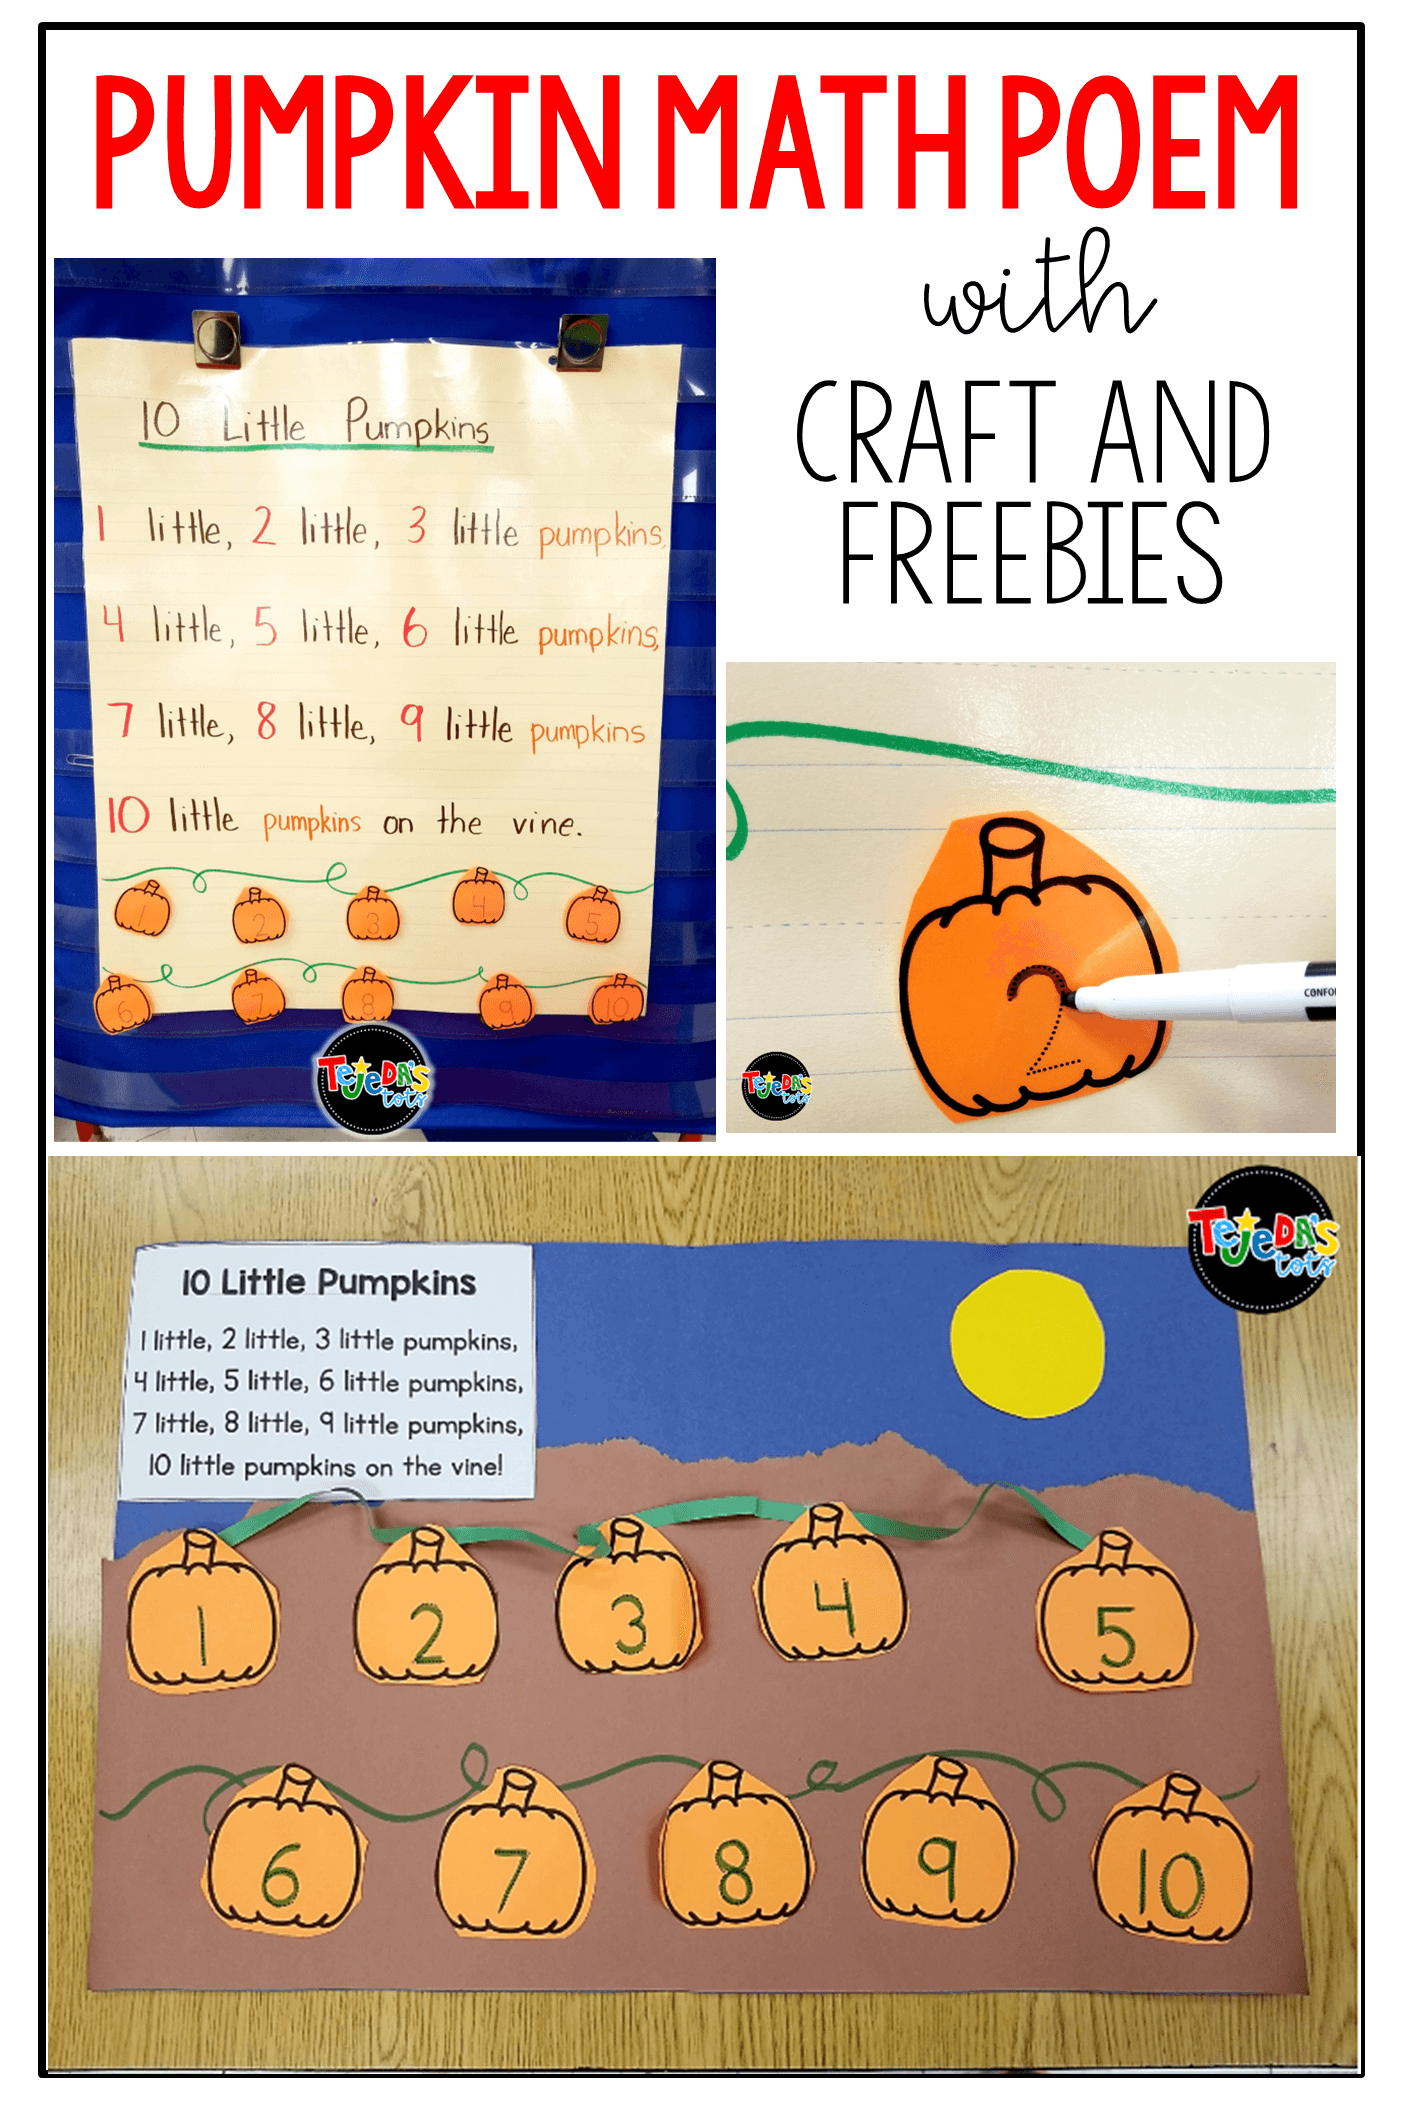 FREE Pumpkin poem and craft for counting 1-10. Perfect for a math center. Students order the numbered pumpkins. #tejedastots #pumpkinmath